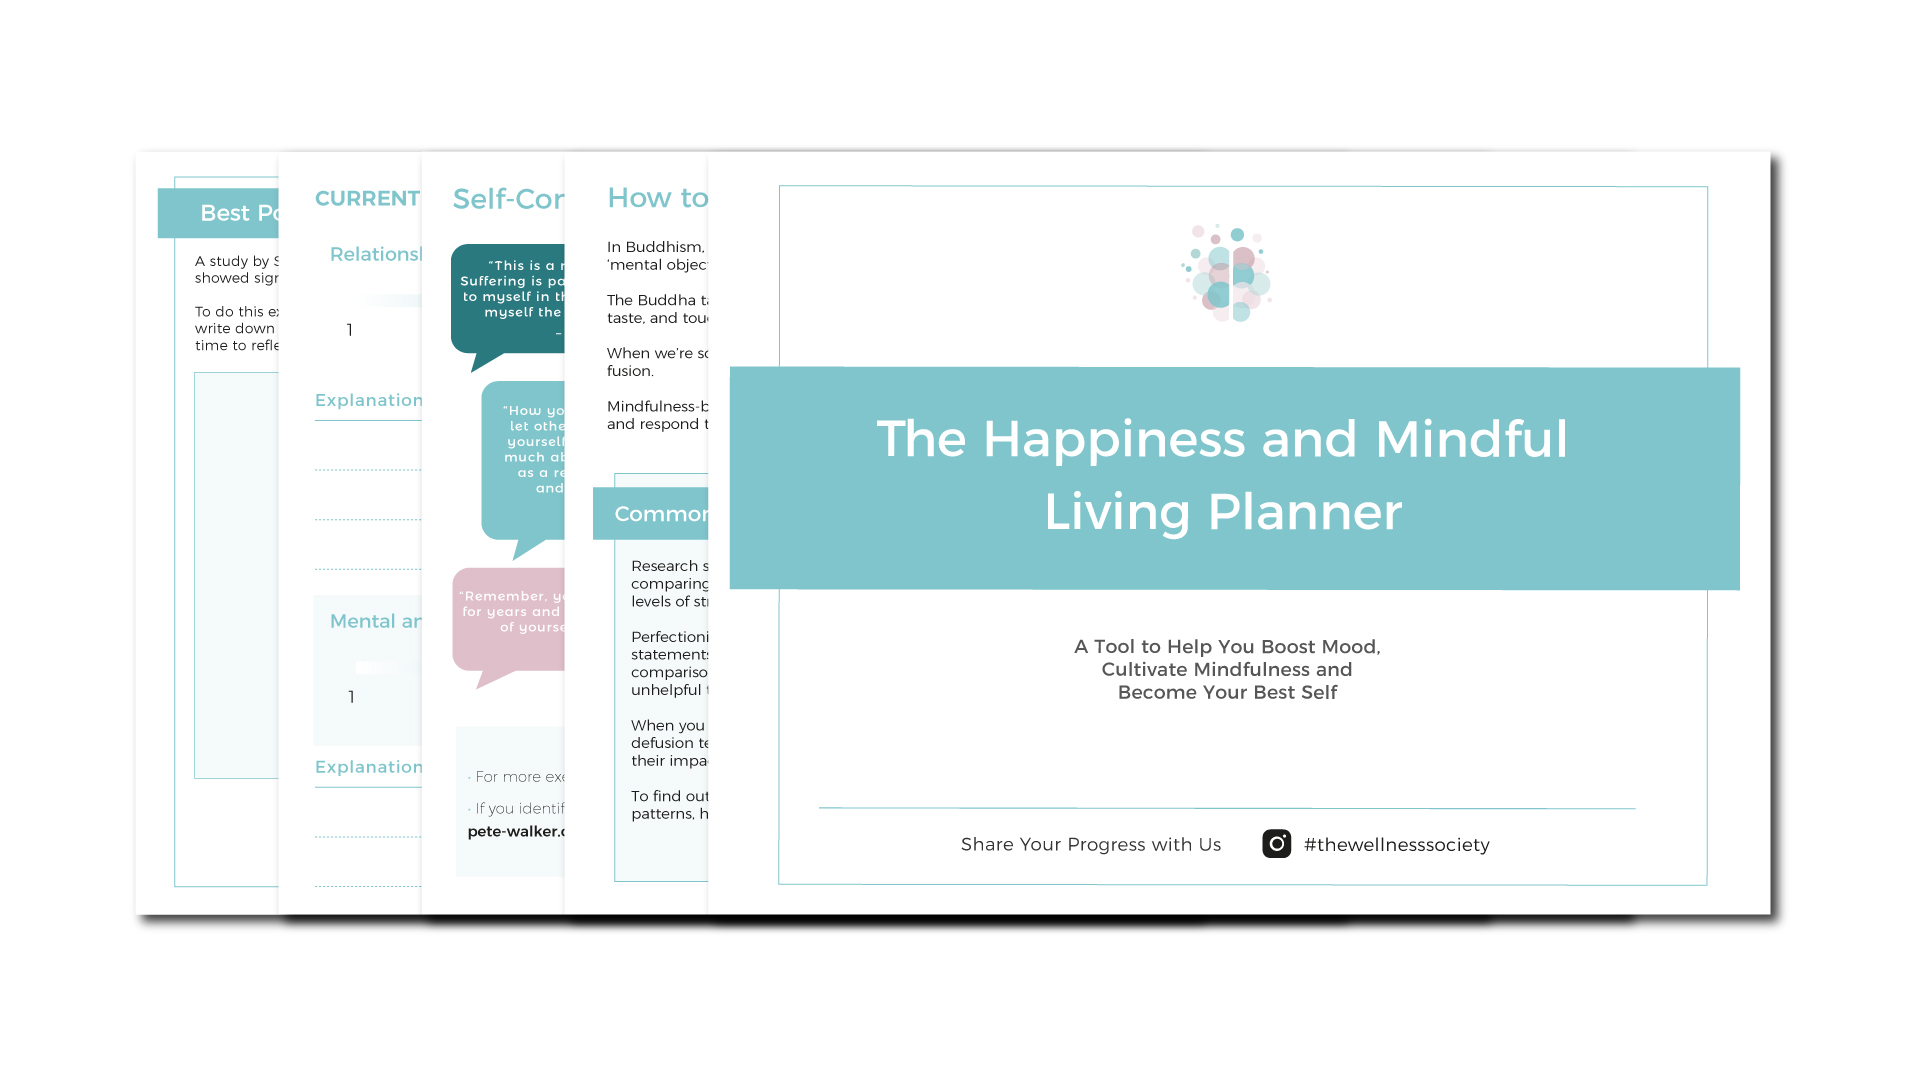 The Happiness and Mindful Living Planner